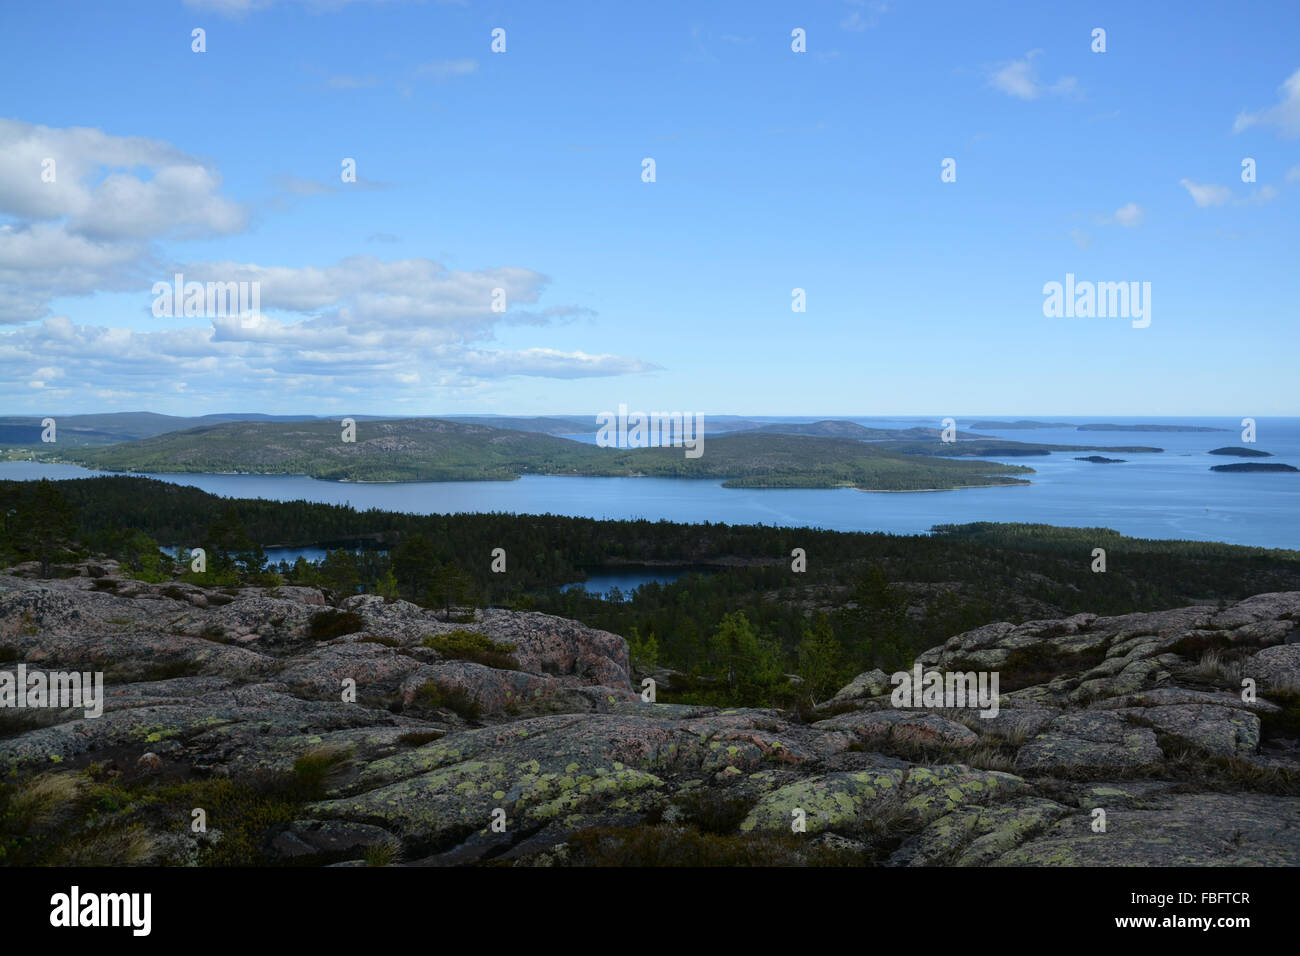 Skuleskogen National Park is a Swedish national park in Vaesternorrland County, on the coast of the Baltic Sea, - Stock Image